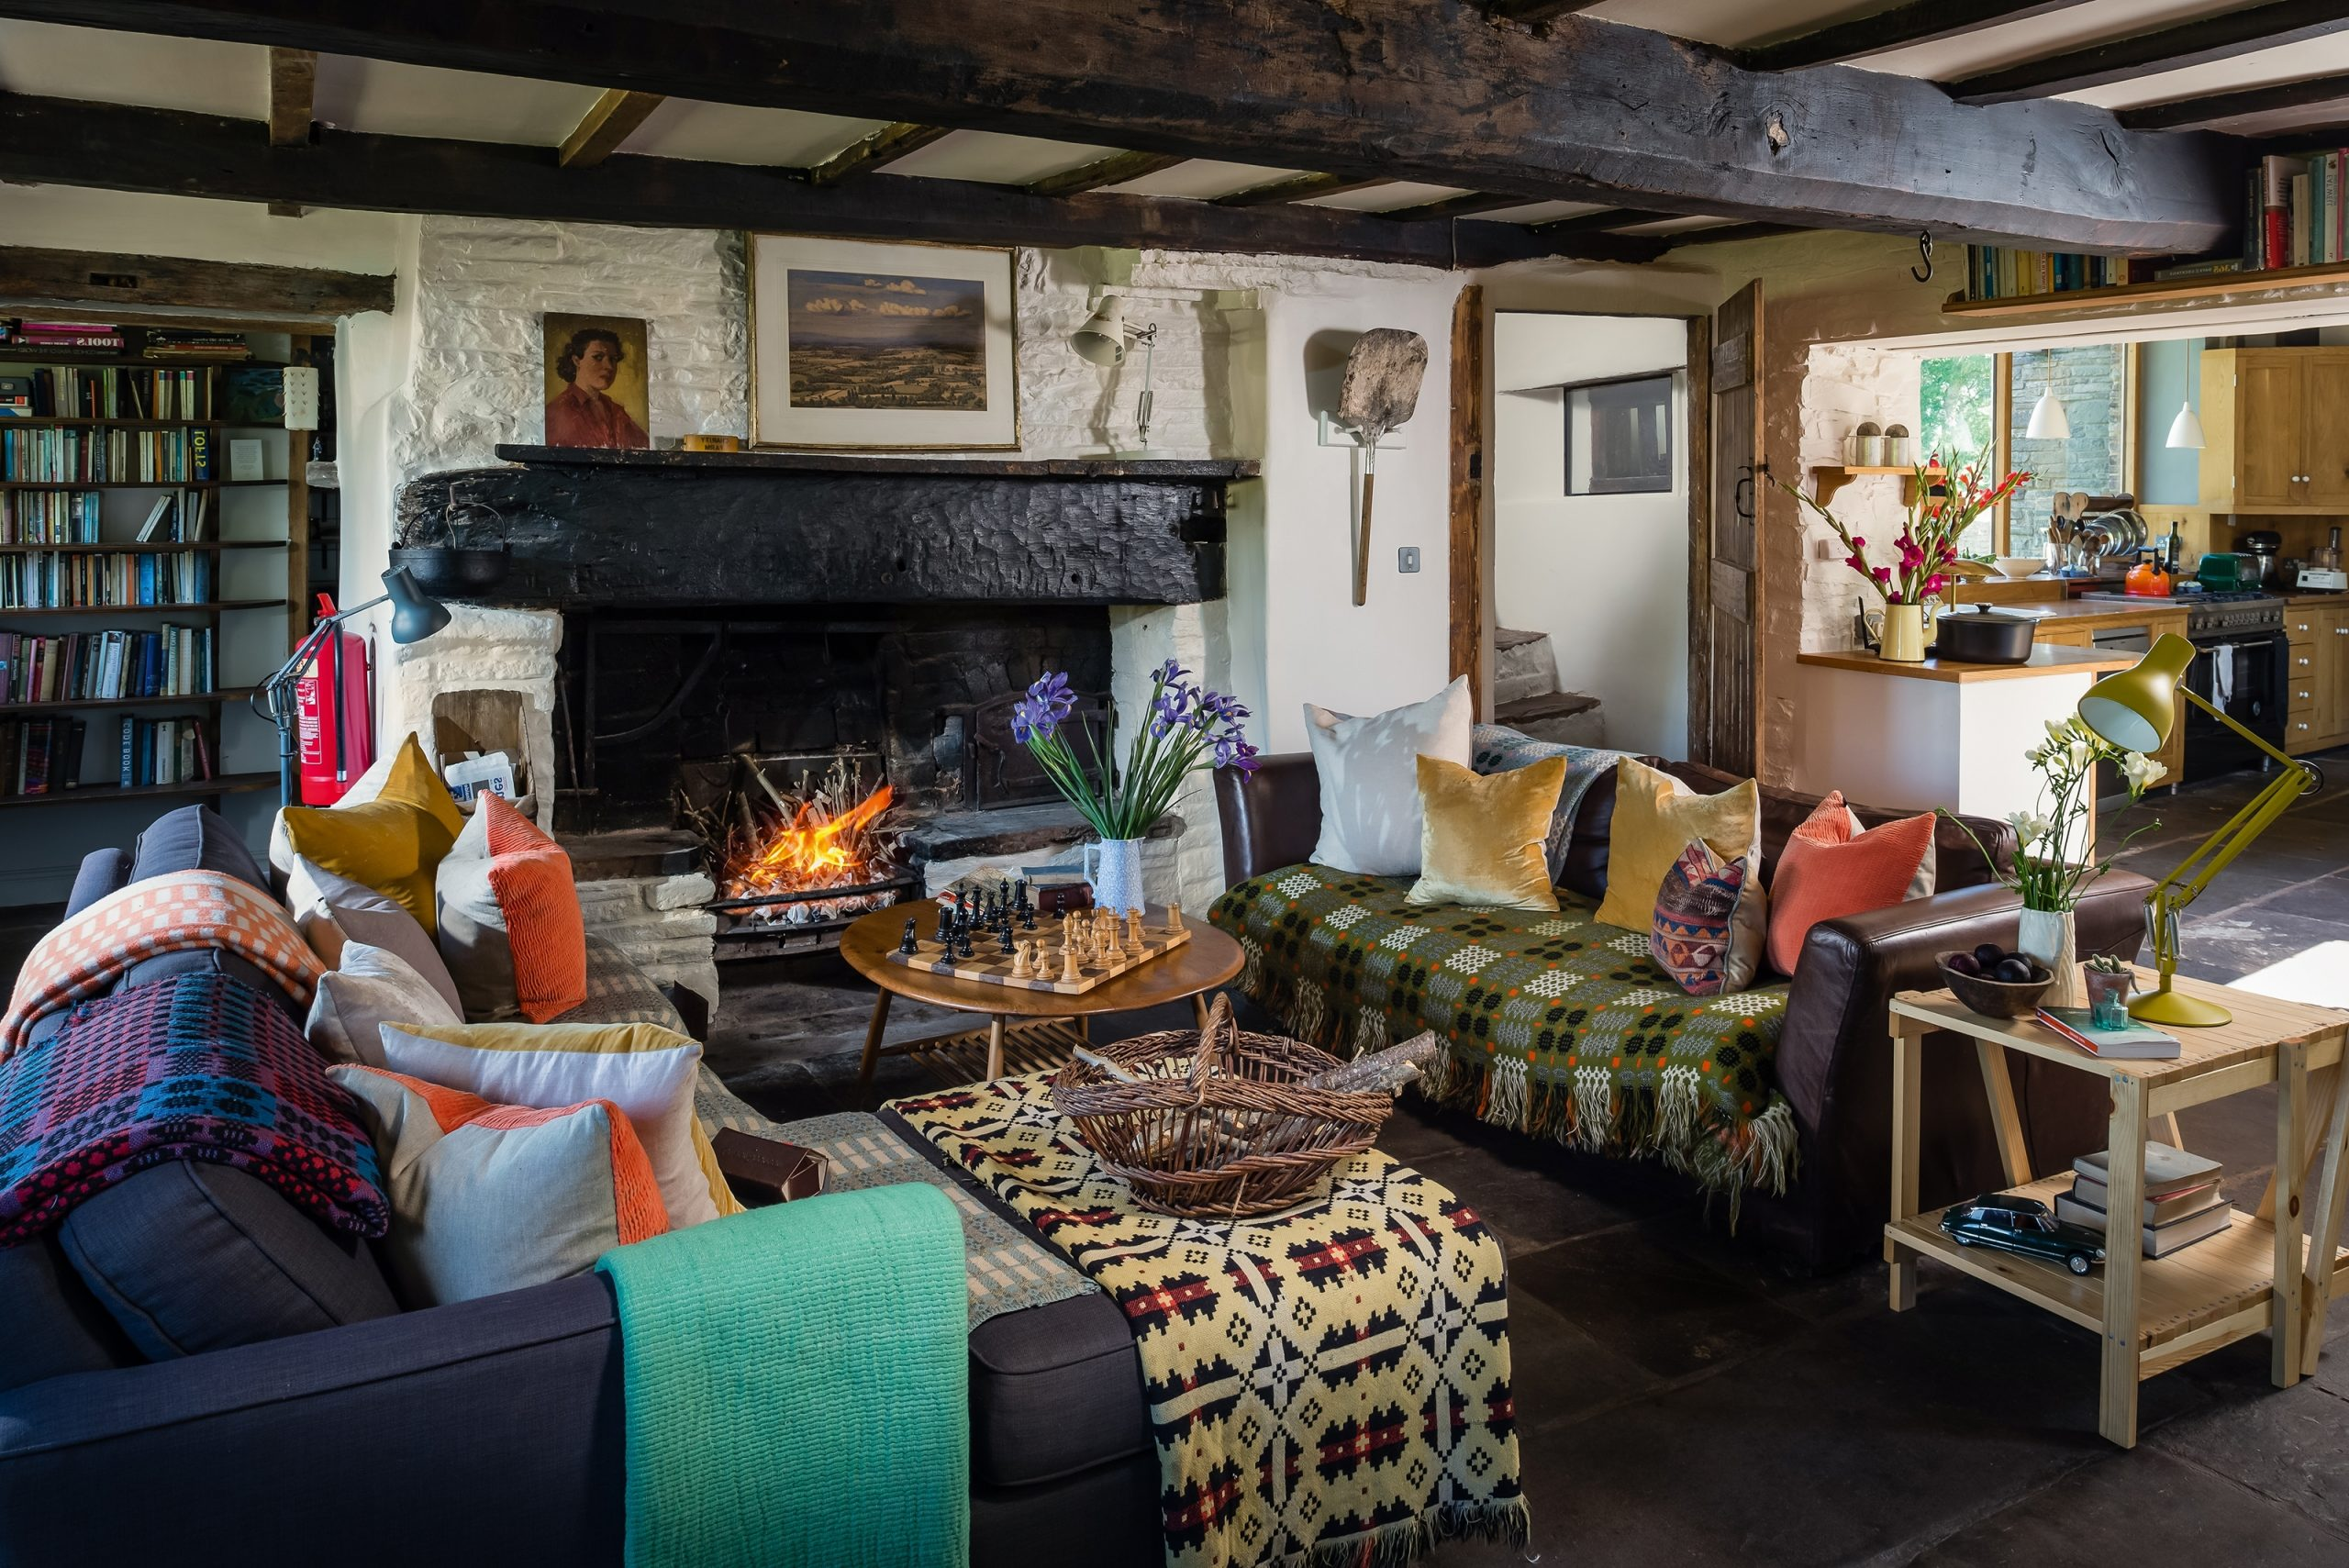 Cottage Living Rooms: 11 Rustic Decorating Ideas | Real Homes 10+ Cosy Country Living Room Ideas